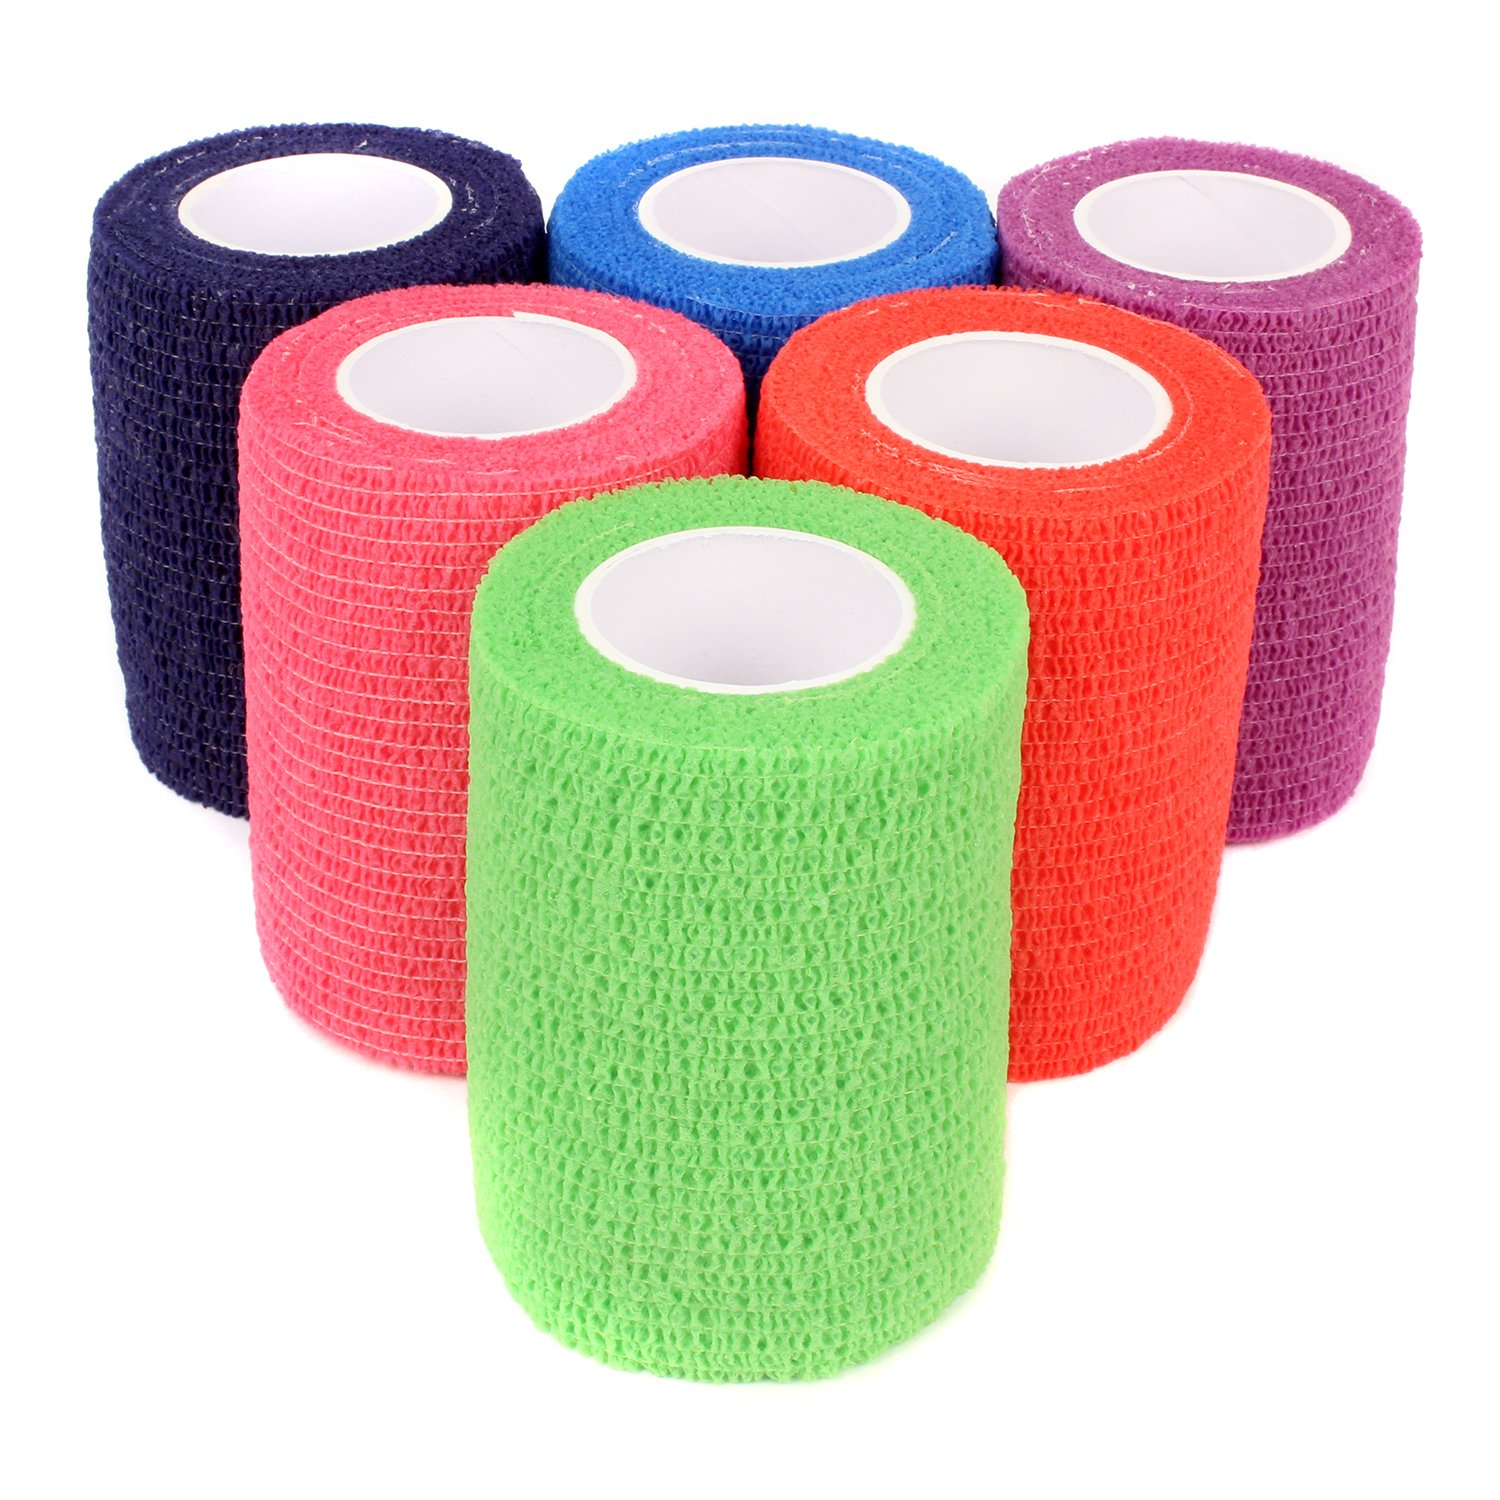 Ever Ready First Aid Self Adherent Cohesive Bandages 3'' x 5' - Rainbow Colors (12)